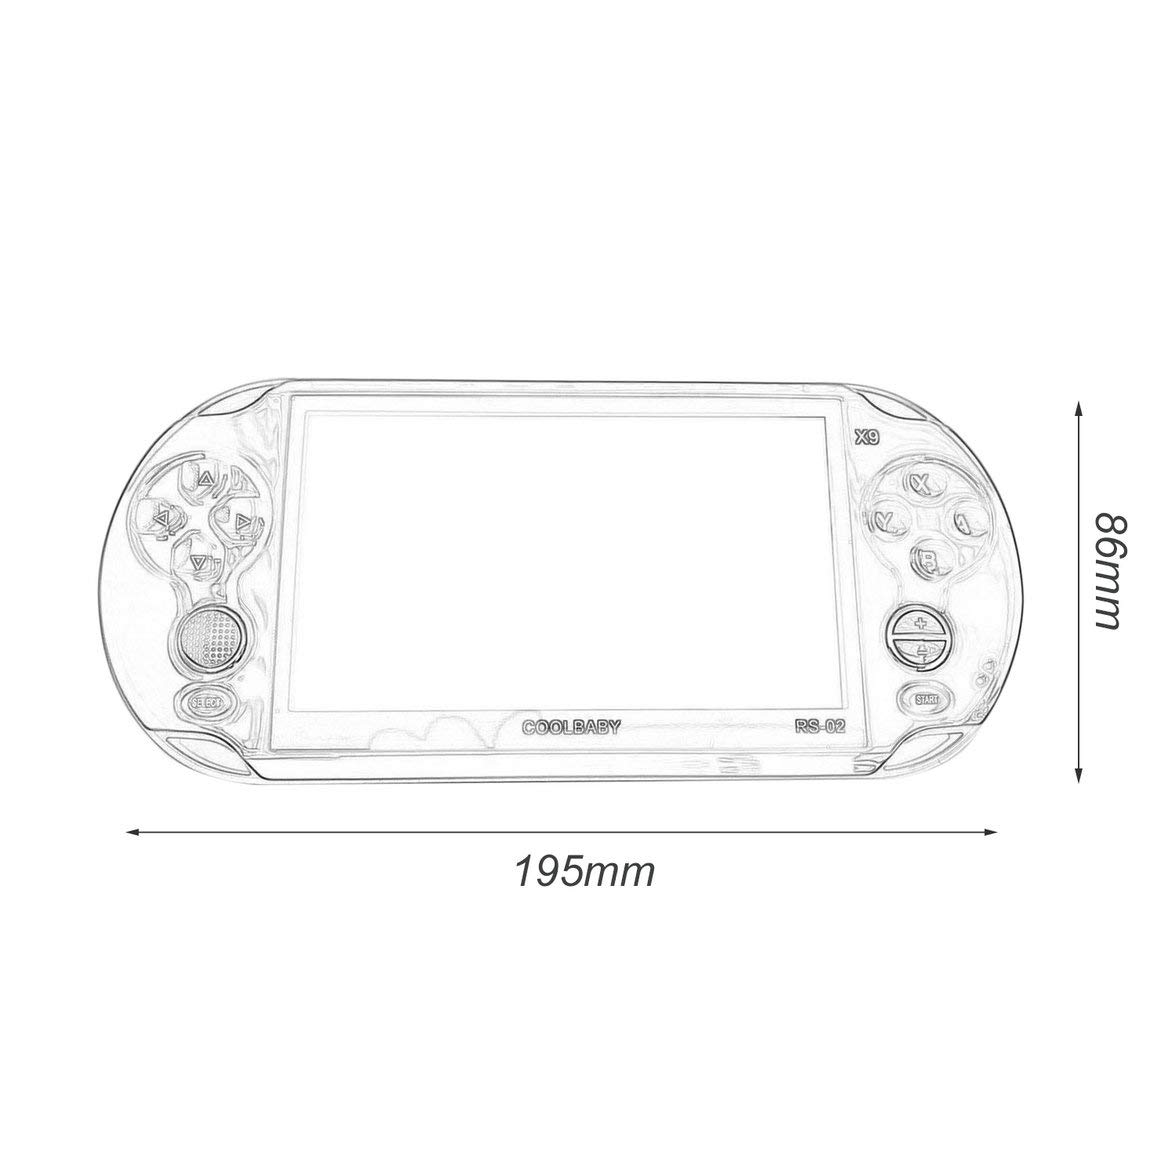 Pandamama Portable Size 5.0 Inch Large Screen 8GB Game Console Handheld Game Player MP3 Player Gamepad with Classic Games by Pandamama (Image #6)